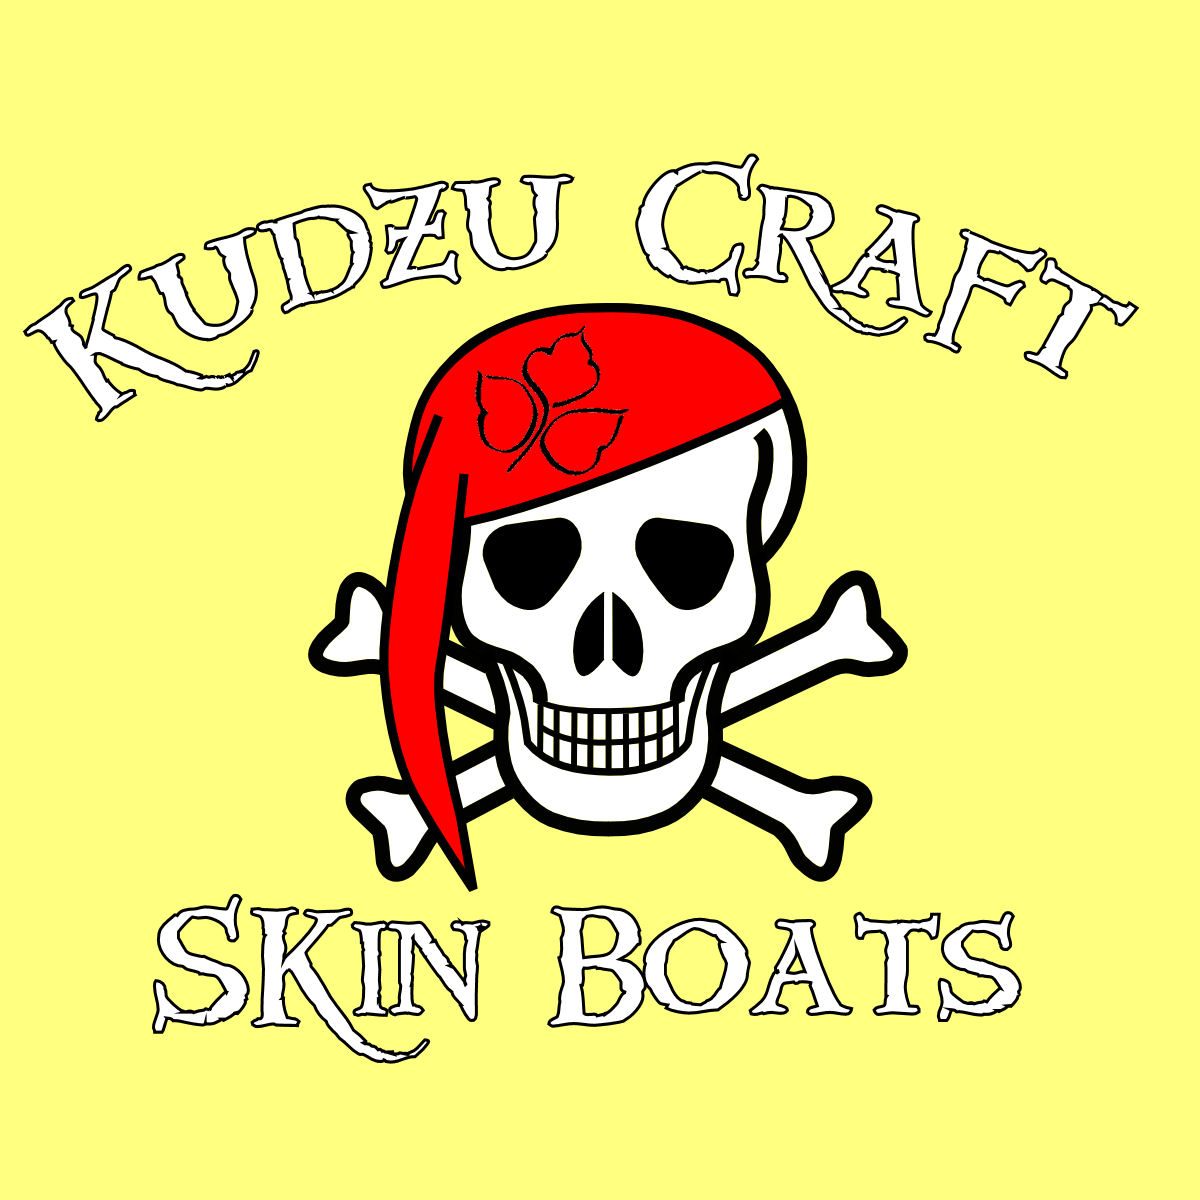 skull-and-bones-with-red-scarf.jpg